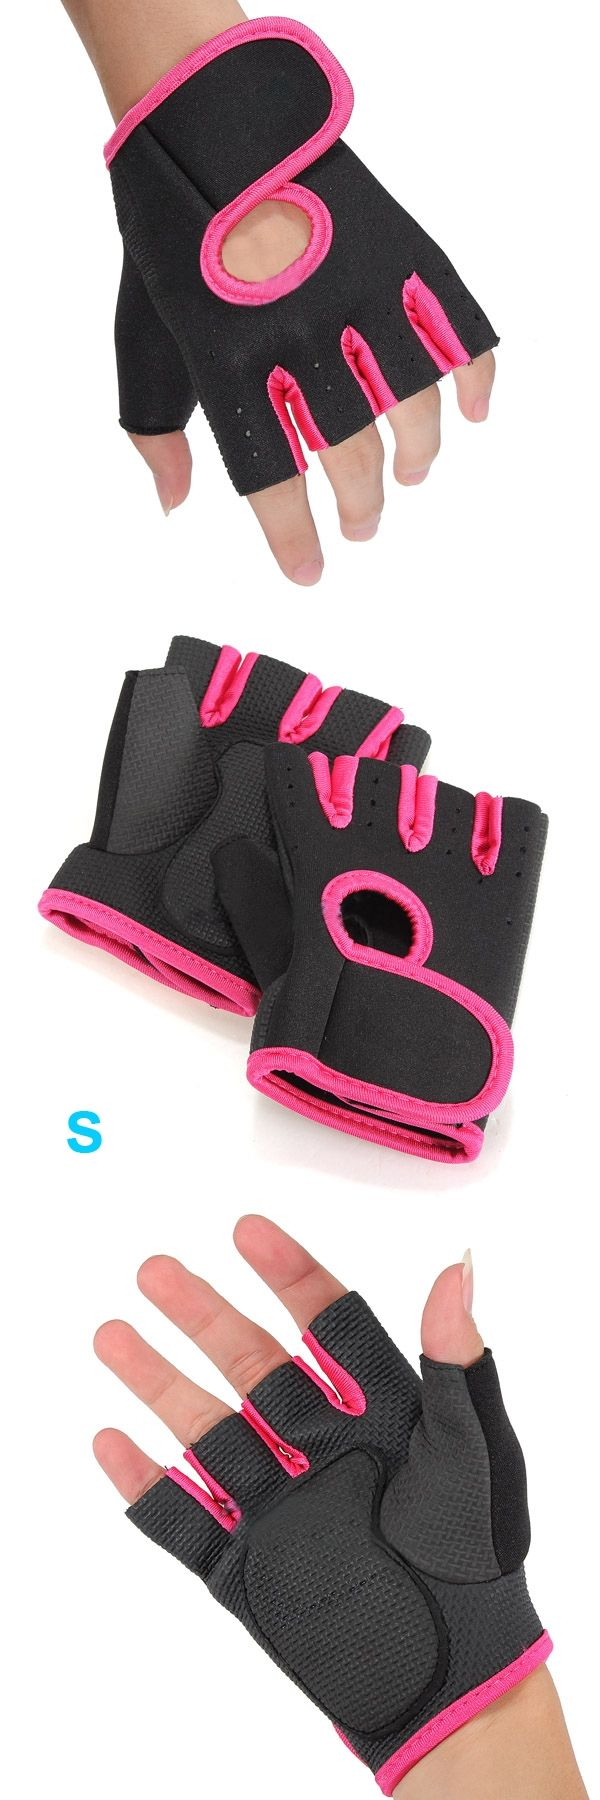 Hot Men & Women Gym Glove Fitness Training Exercise Body Building Workout Weight Lifting Gloves Half Finger